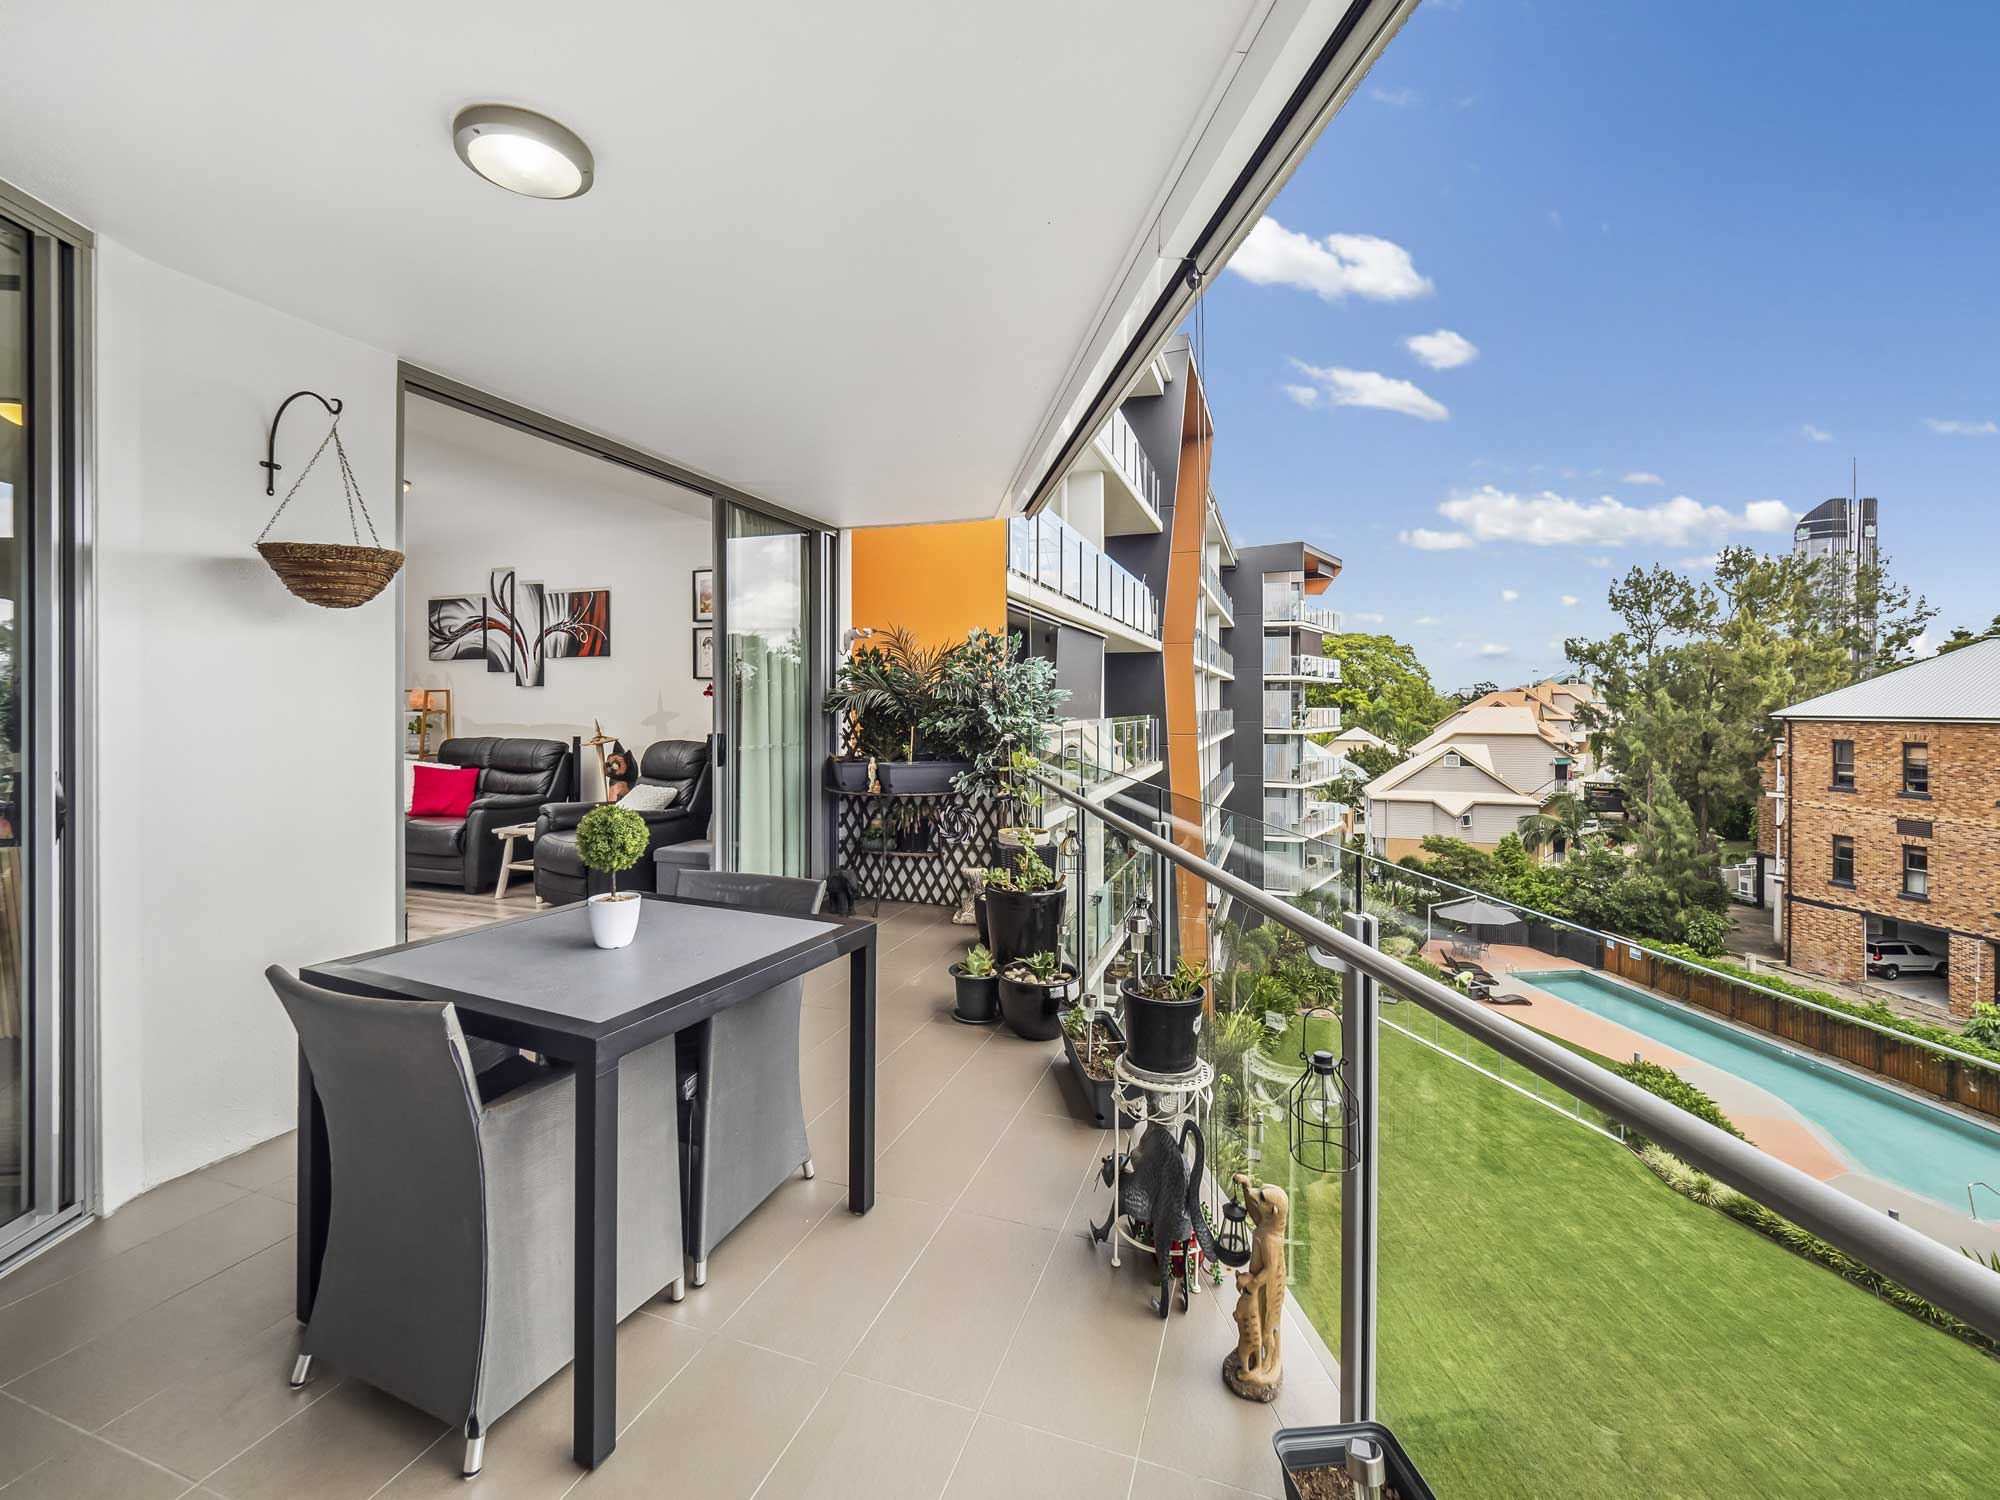 Real estate photography of Kangaroo Point apartment for sale - the balcony